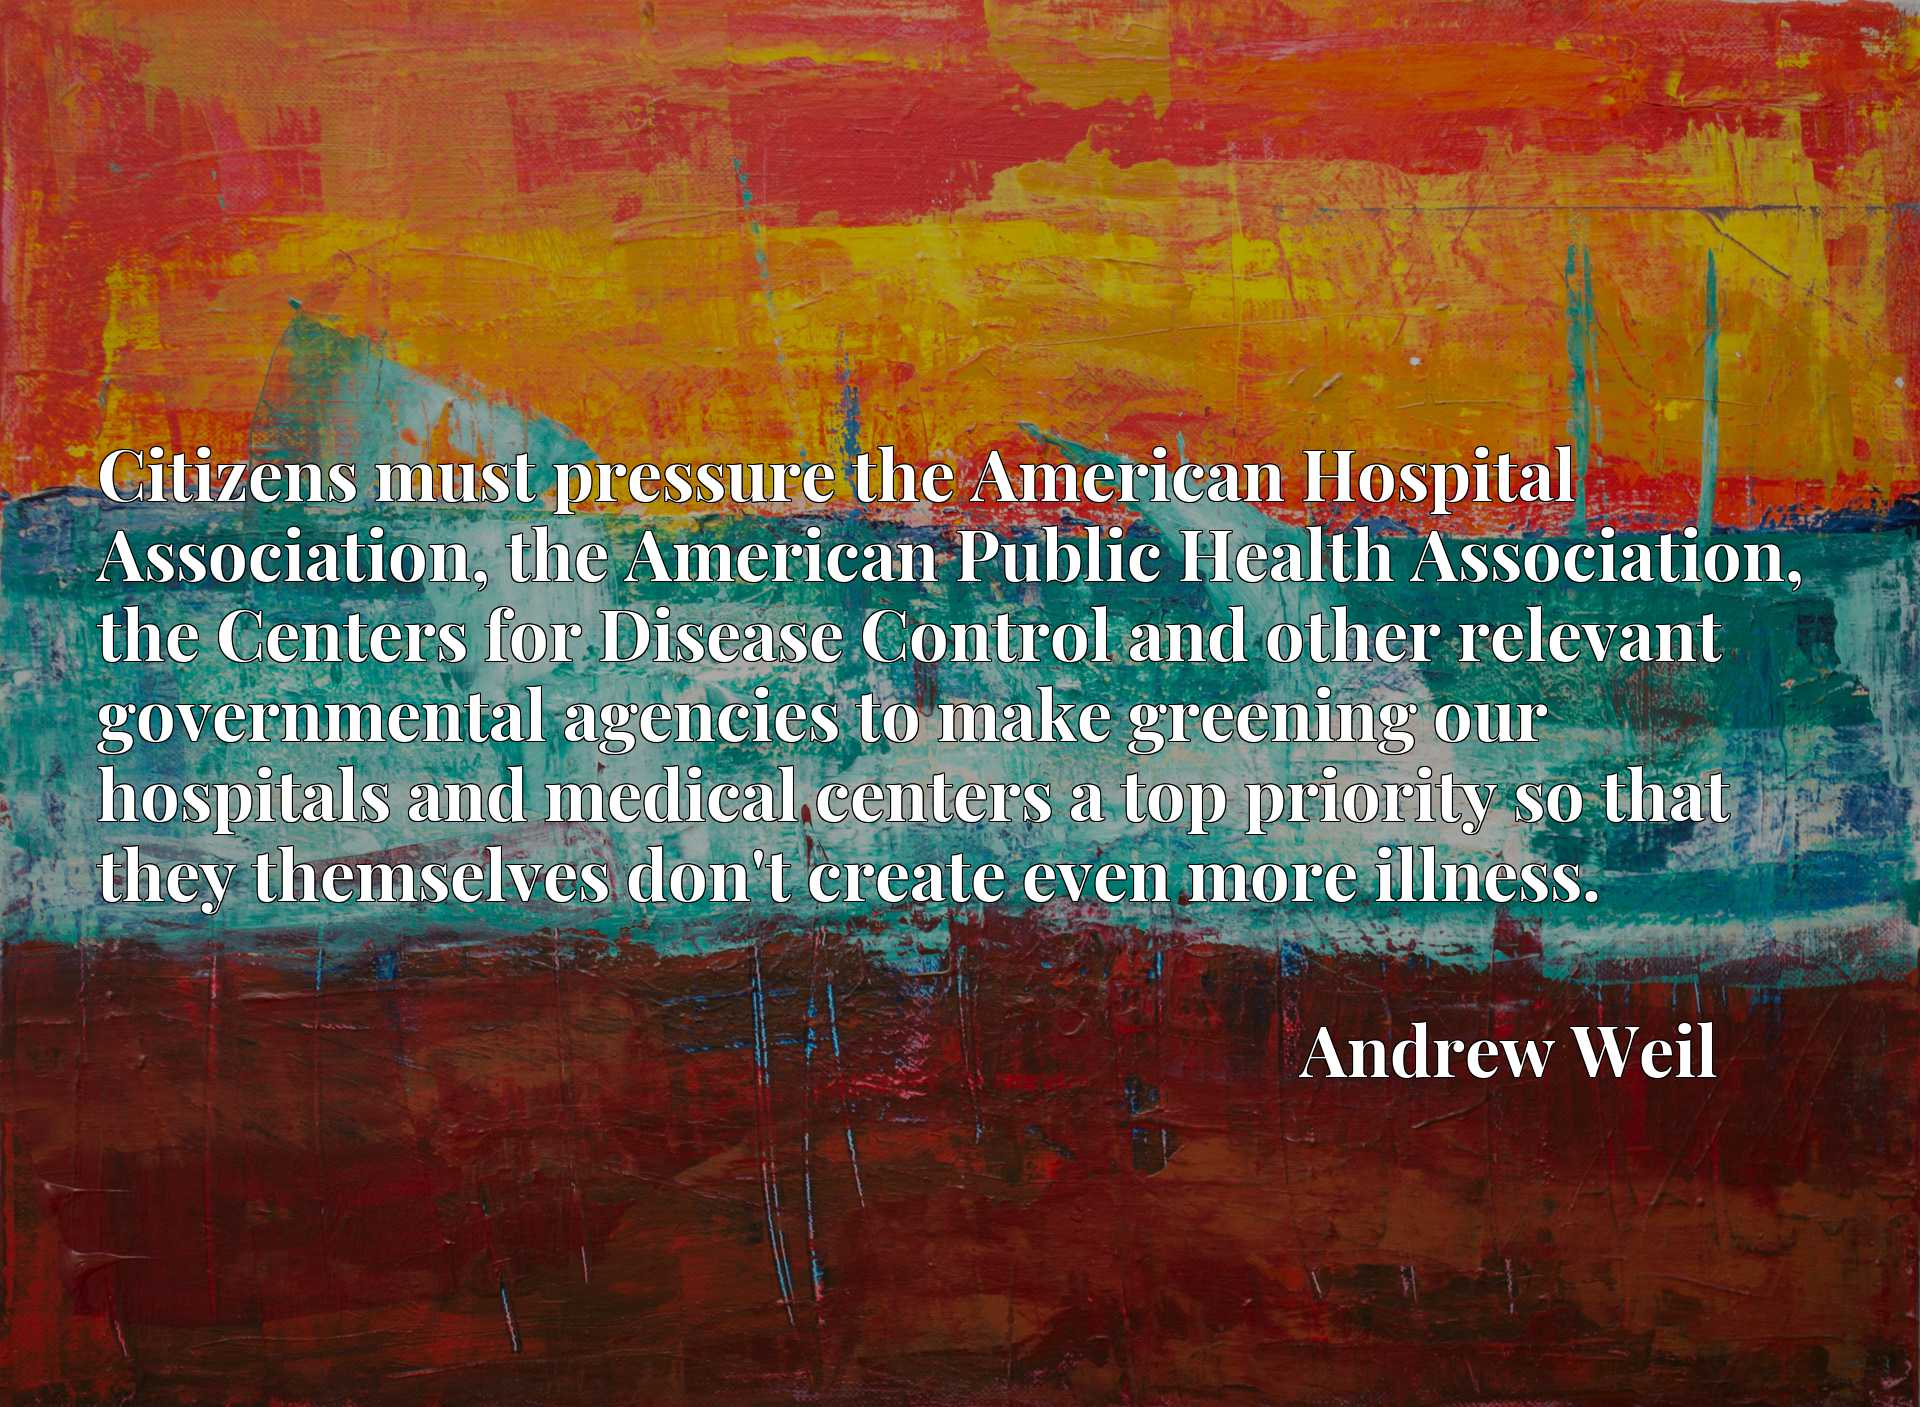 Citizens must pressure the American Hospital Association, the American Public Health Association, the Centers for Disease Control and other relevant governmental agencies to make greening our hospitals and medical centers a top priority so that they themselves don't create even more illness.